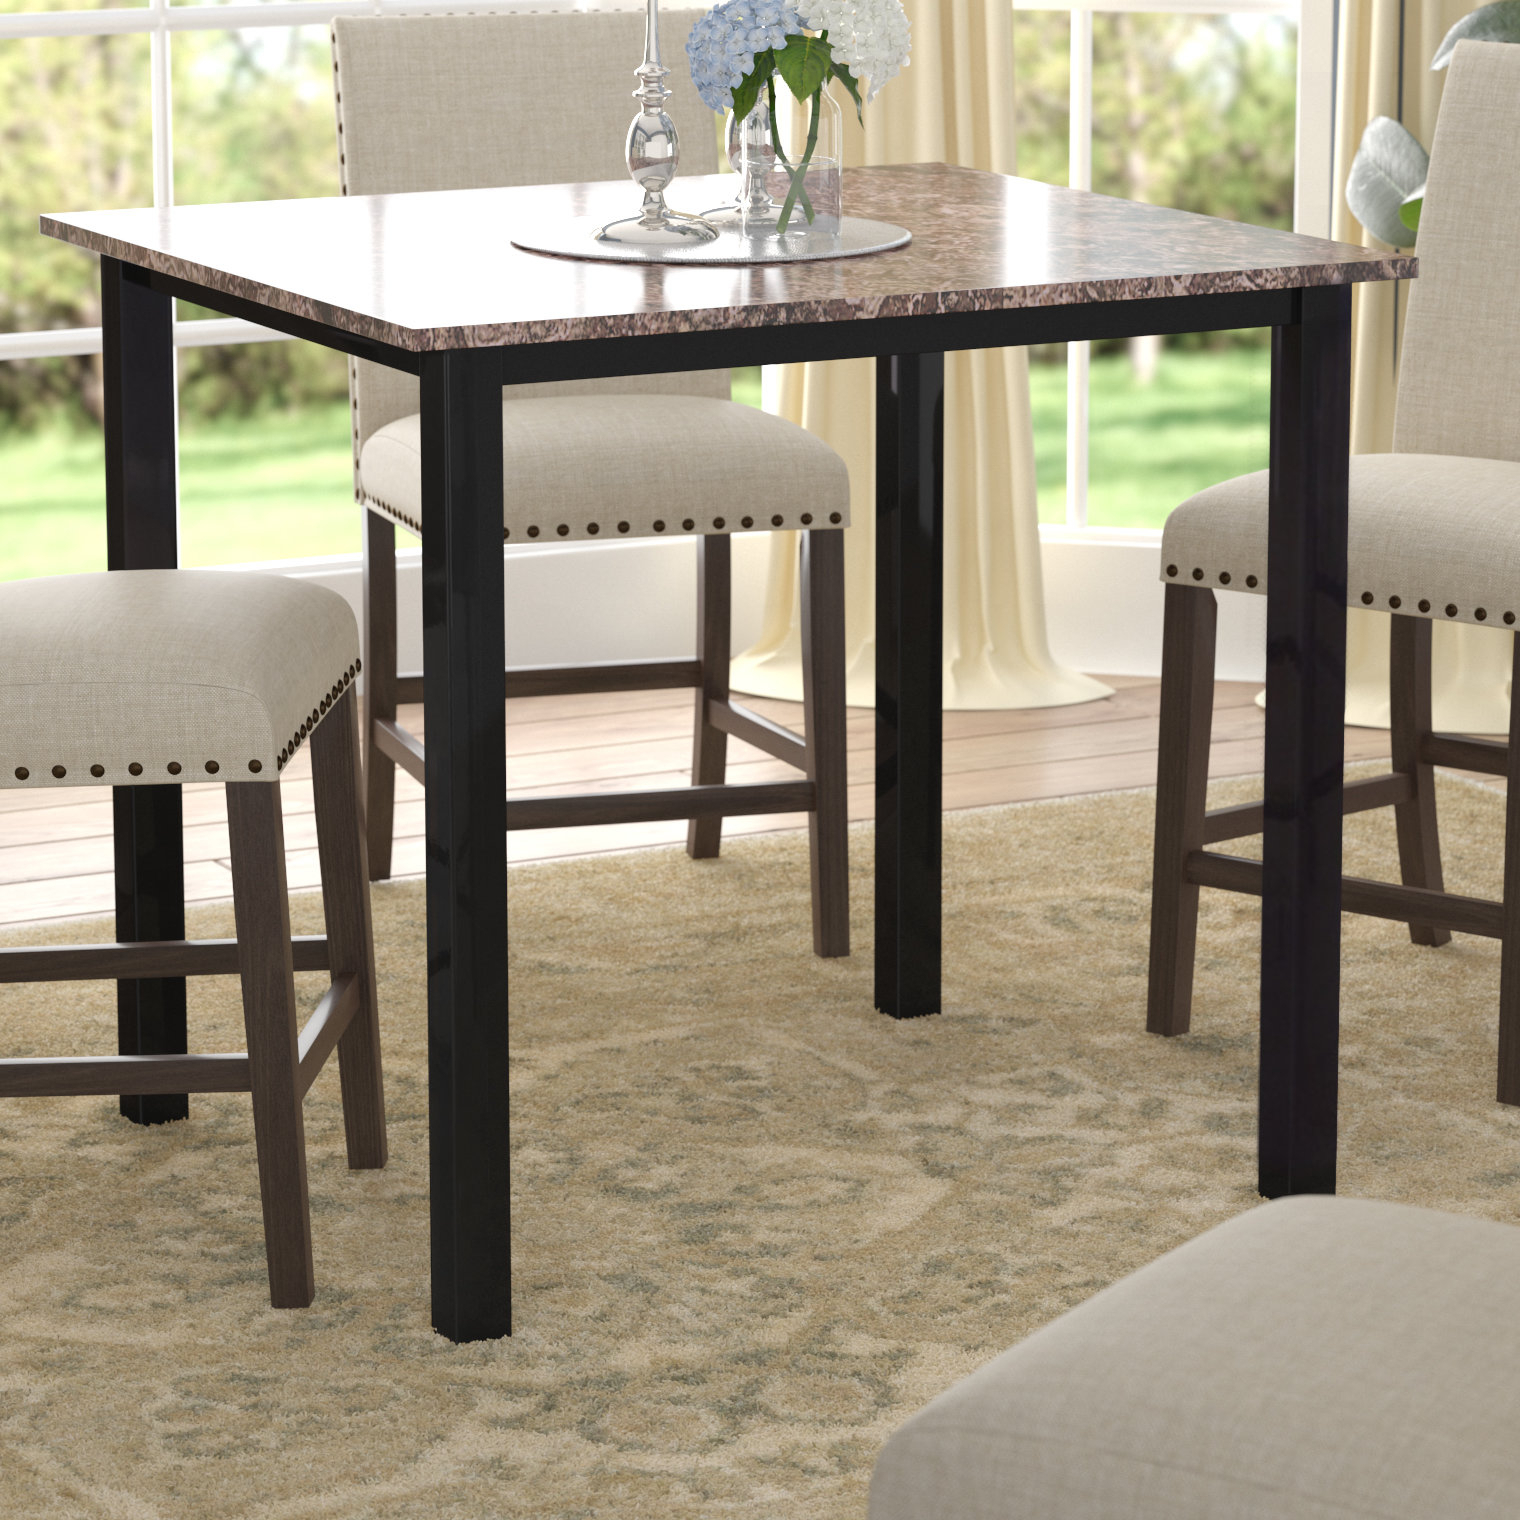 2019 Red Barrel Studio Noyes Counter Height Dining Table & Reviews (View 3 of 25)